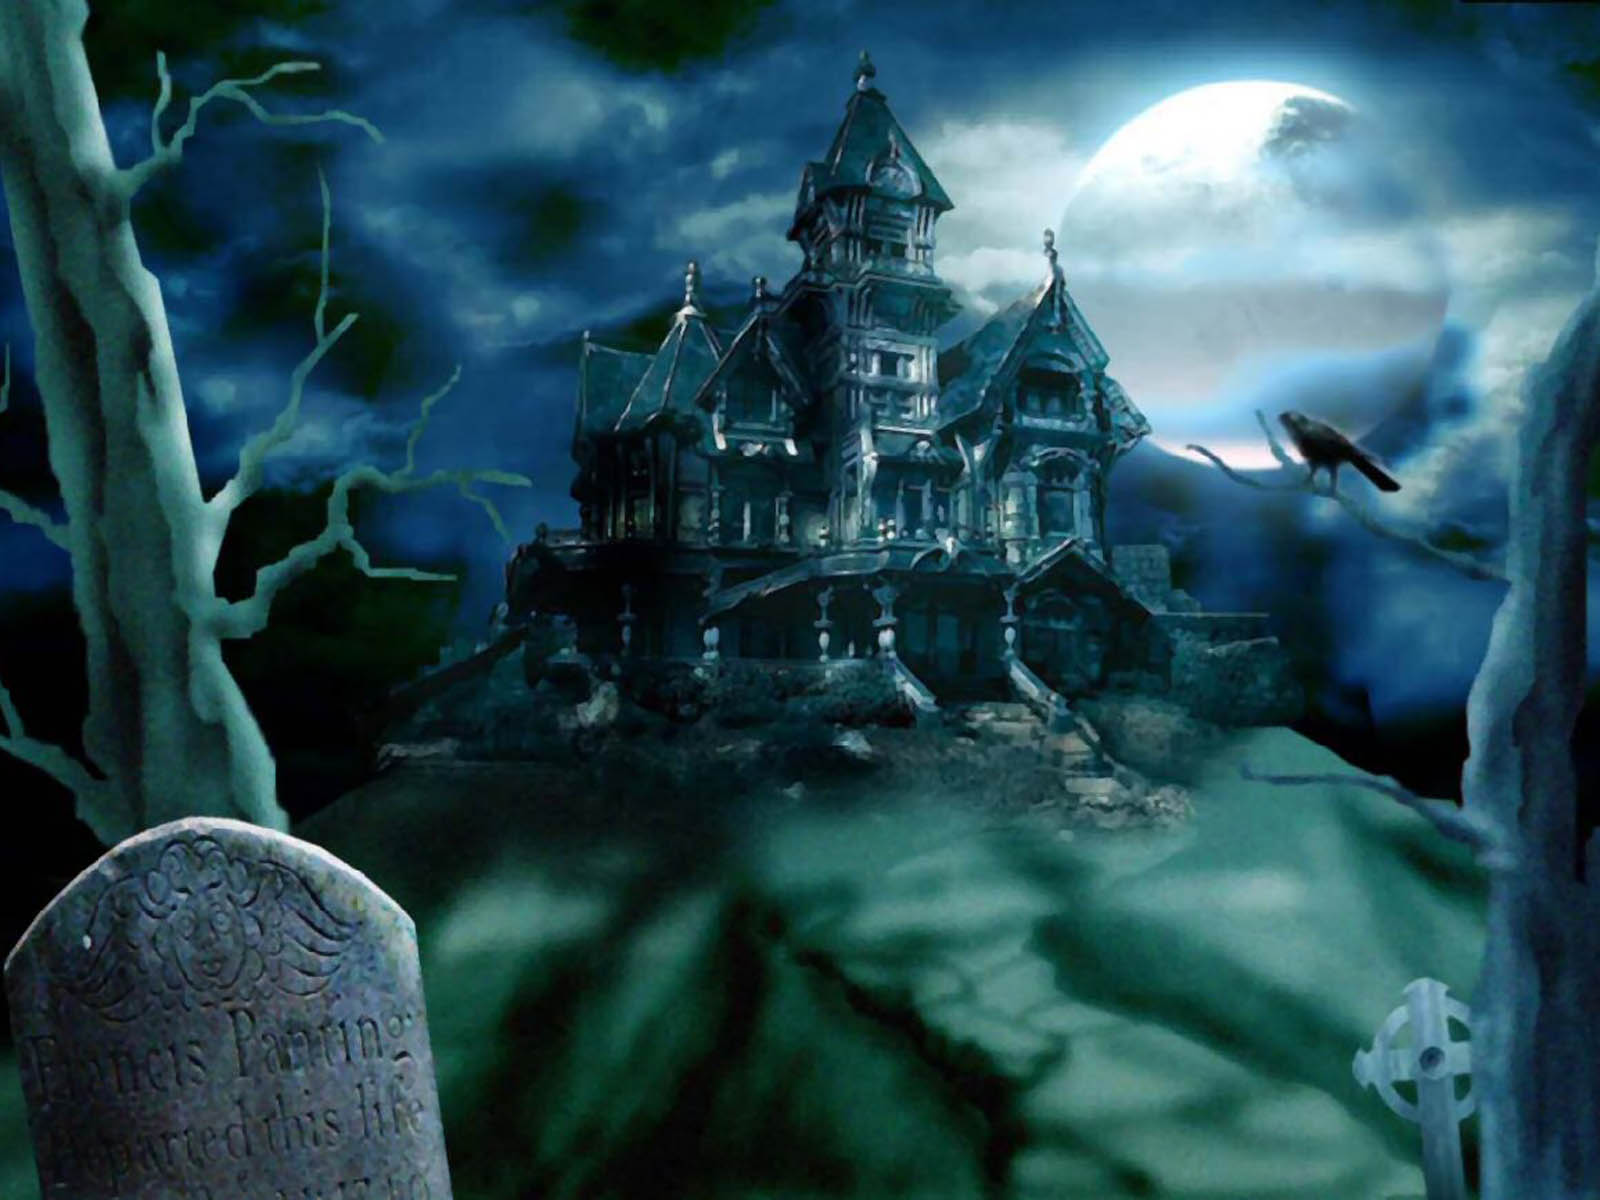 Tag Halloween Wallpapers Images Photos Pictures and Backgrounds 1600x1200